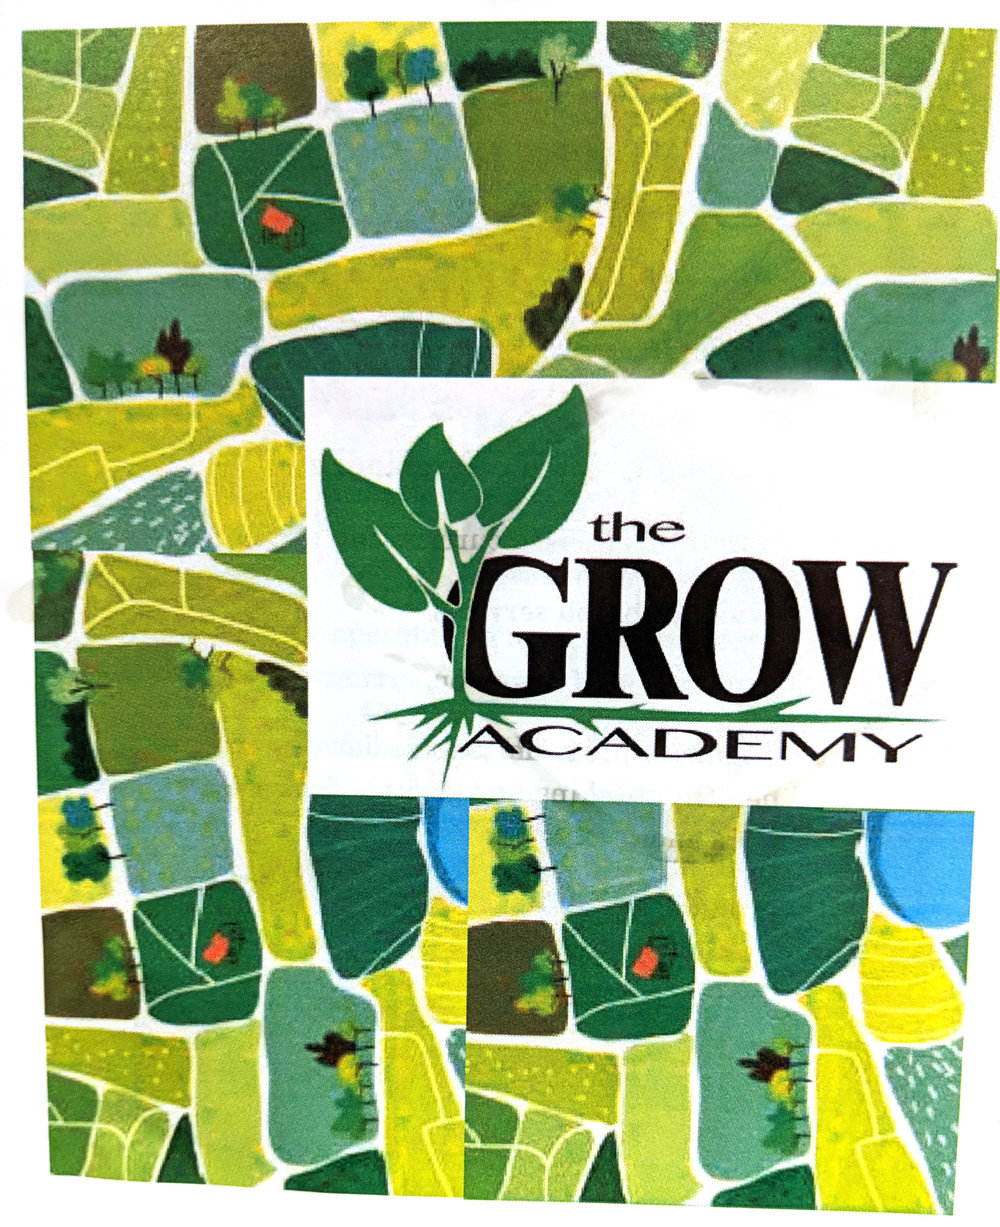 The Grow Academy